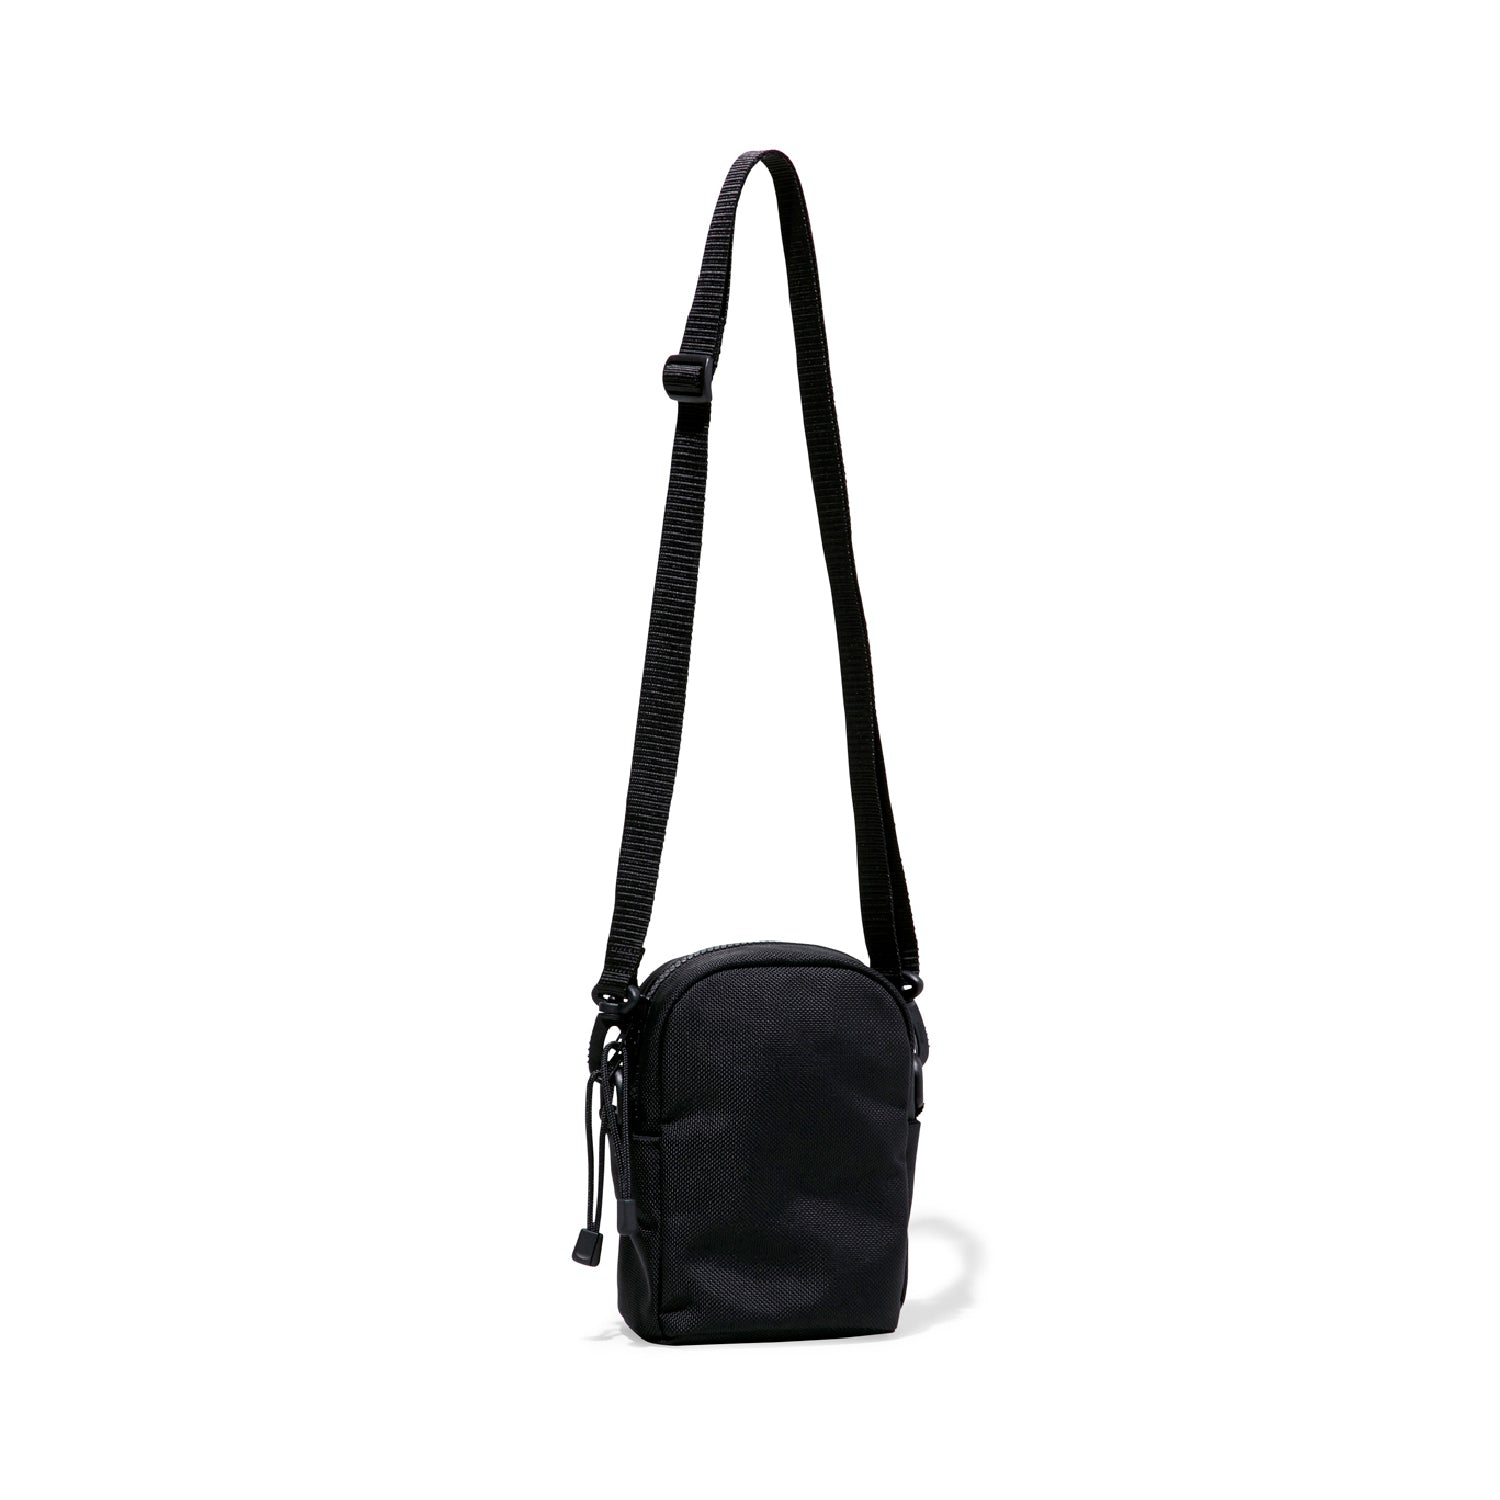 SB / N-SHOULDER BAG